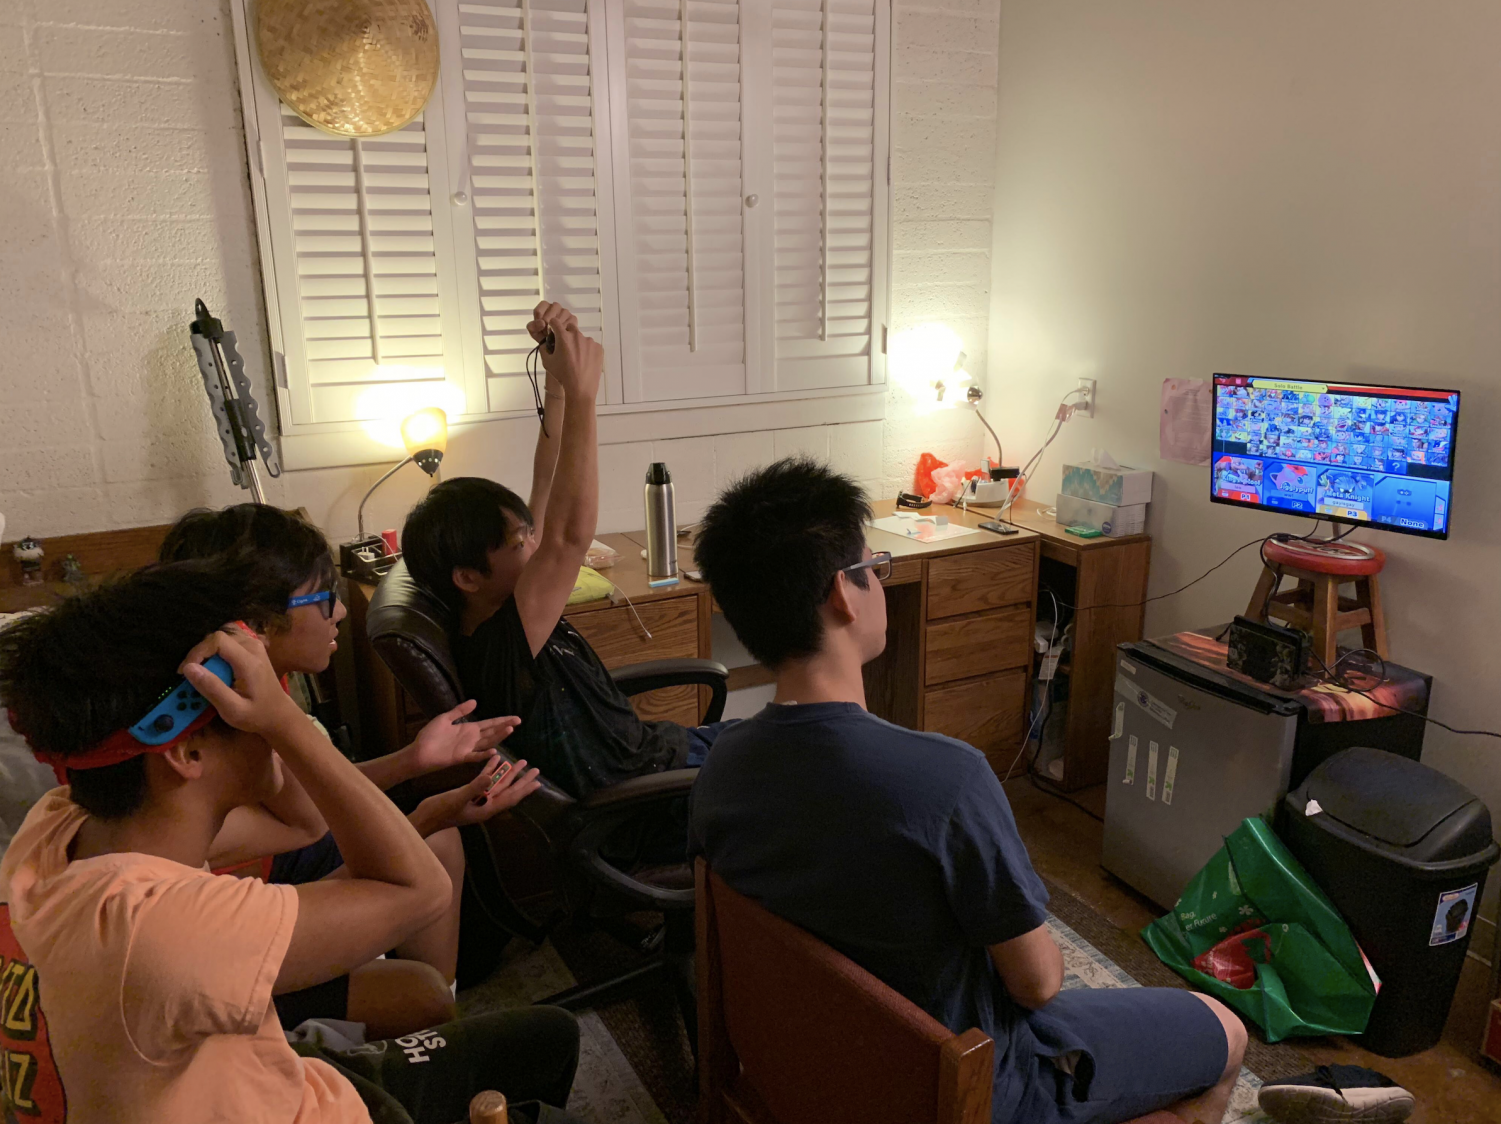 Winston Li ('21), Matthew Gaw ('21), Jonathan Zhang ('21), and Leo Cheng ('21) all gather around for a game of Super Smash Bros!